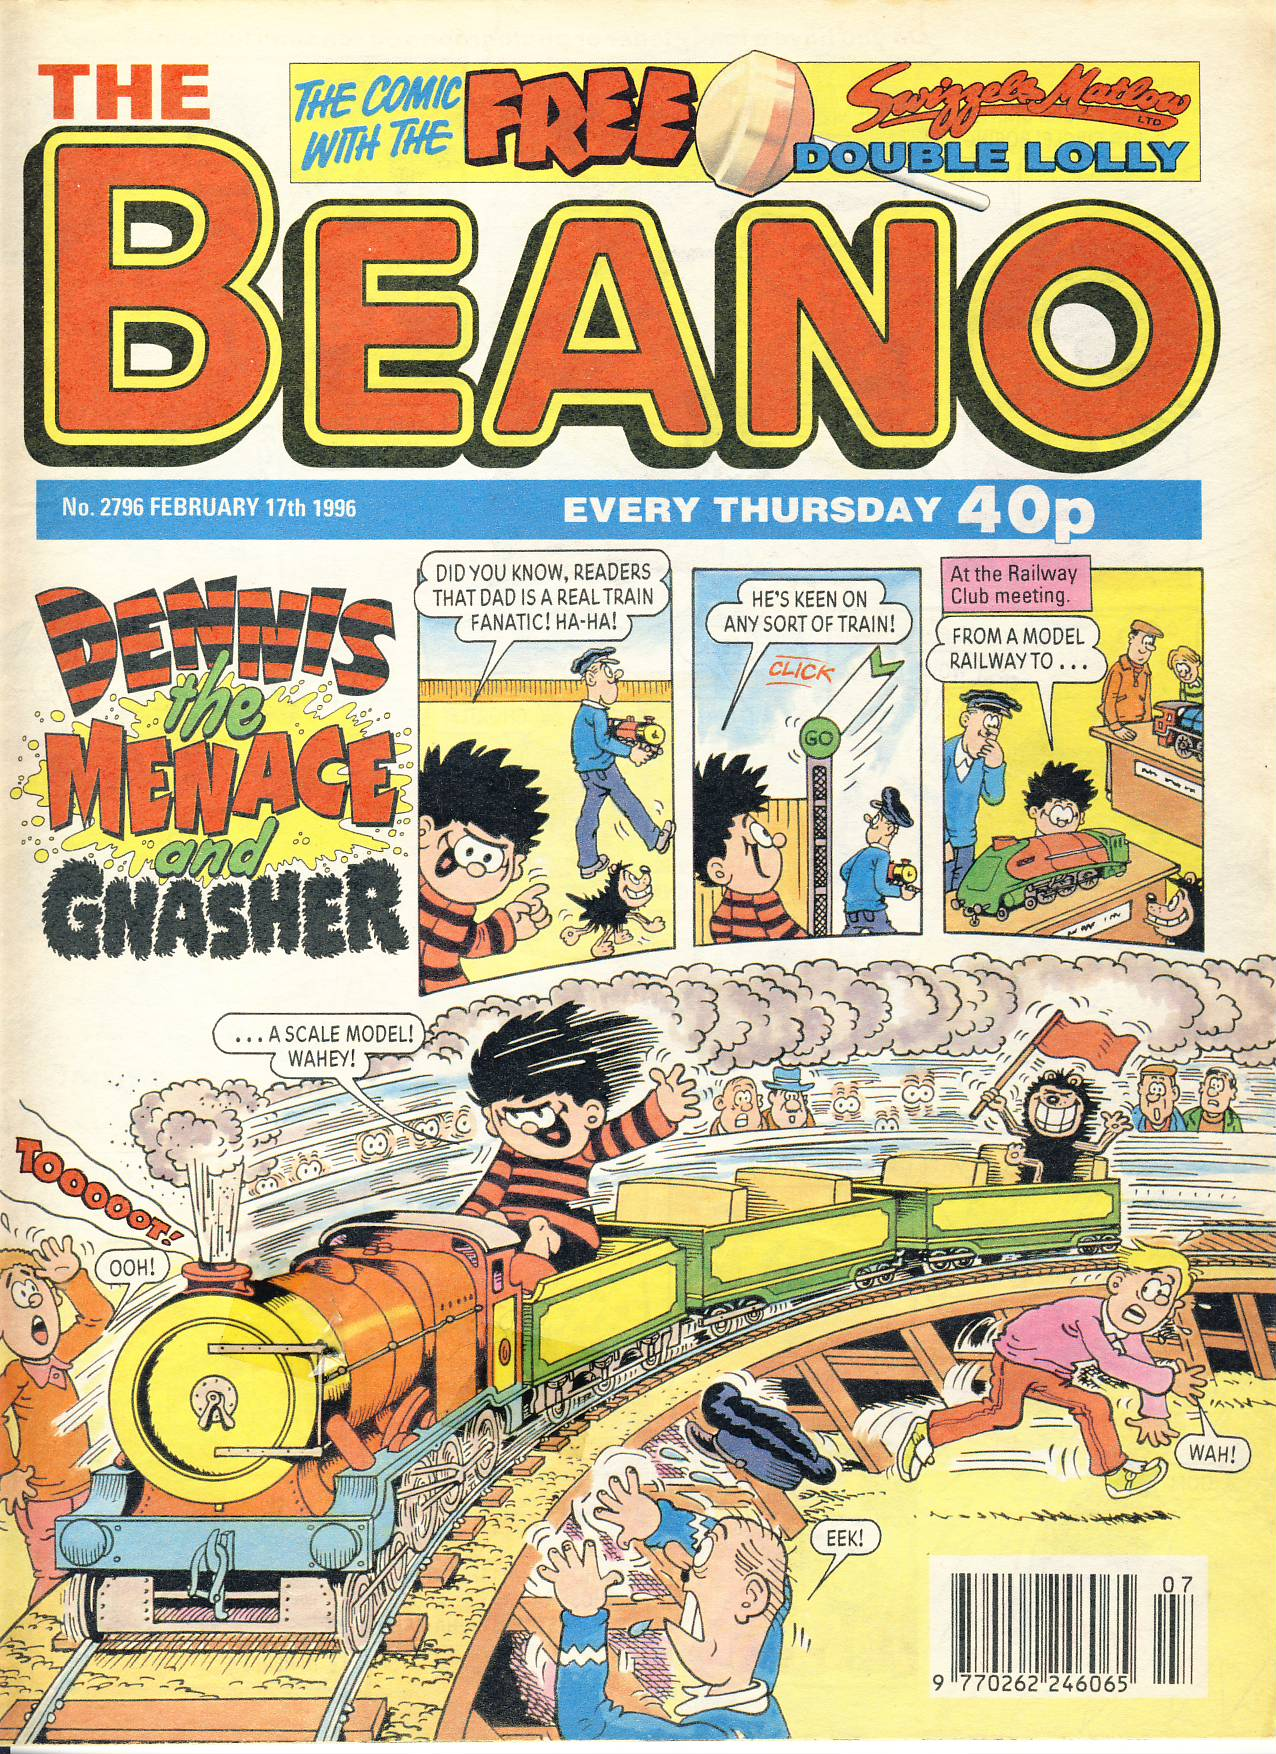 1996 February 17th BEANO vintage comic Good Gift Christmas Present Birthday Anniversary ref212 a pre-owned item in very good read condition.